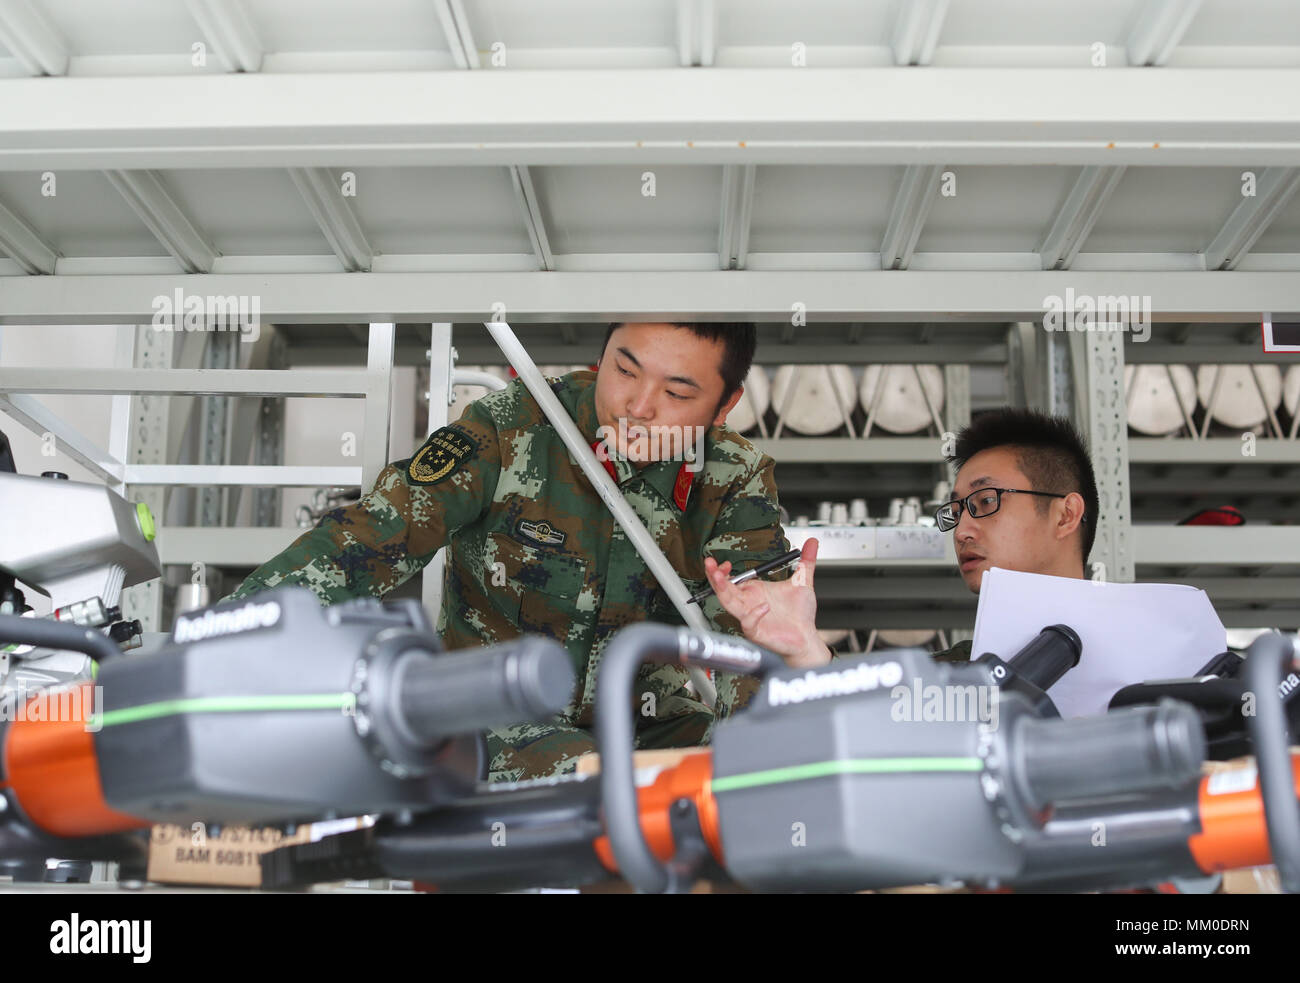 (180509) -- CHENGDU, May 9, 2018 (Xinhua) -- Fire services officer Jiang Yuhang (R) and soldier Xu Songsong check the firefighting equipment in Kaili City, southwest China's Guizhou Province, May 8, 2018. On May 17, 2008, Jiang, a 20-year-old highway administration employee, was extricated by firefighters, 123 hours after he was trapped in the rubble at quake-hit Yingxiu Township of Wenchuan County, southwest China's Sichuan Province. Jiang was a survivor of the 8.0-magnitude earthquake that struck Sichuan's Wenchuan County on May 12, 2008. The quake left more than 69,000 dead, 374,000 injur - Stock Image